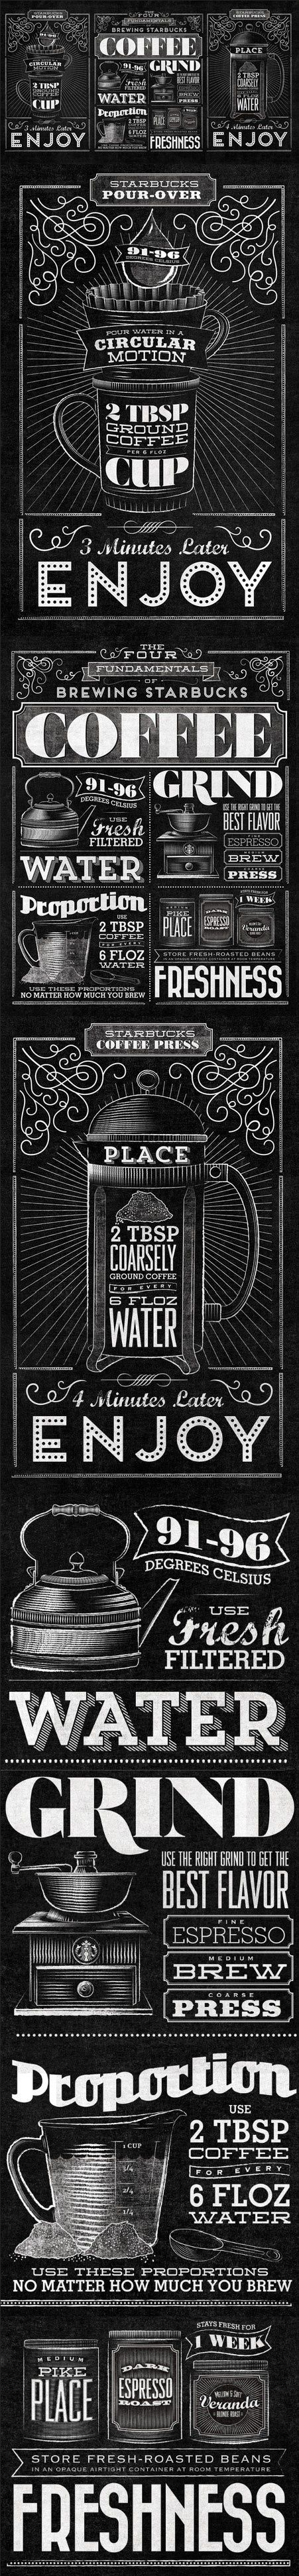 http://www.behance.net/gallery/Starbucks-Home-Brew/7638293 #coffee #infographics